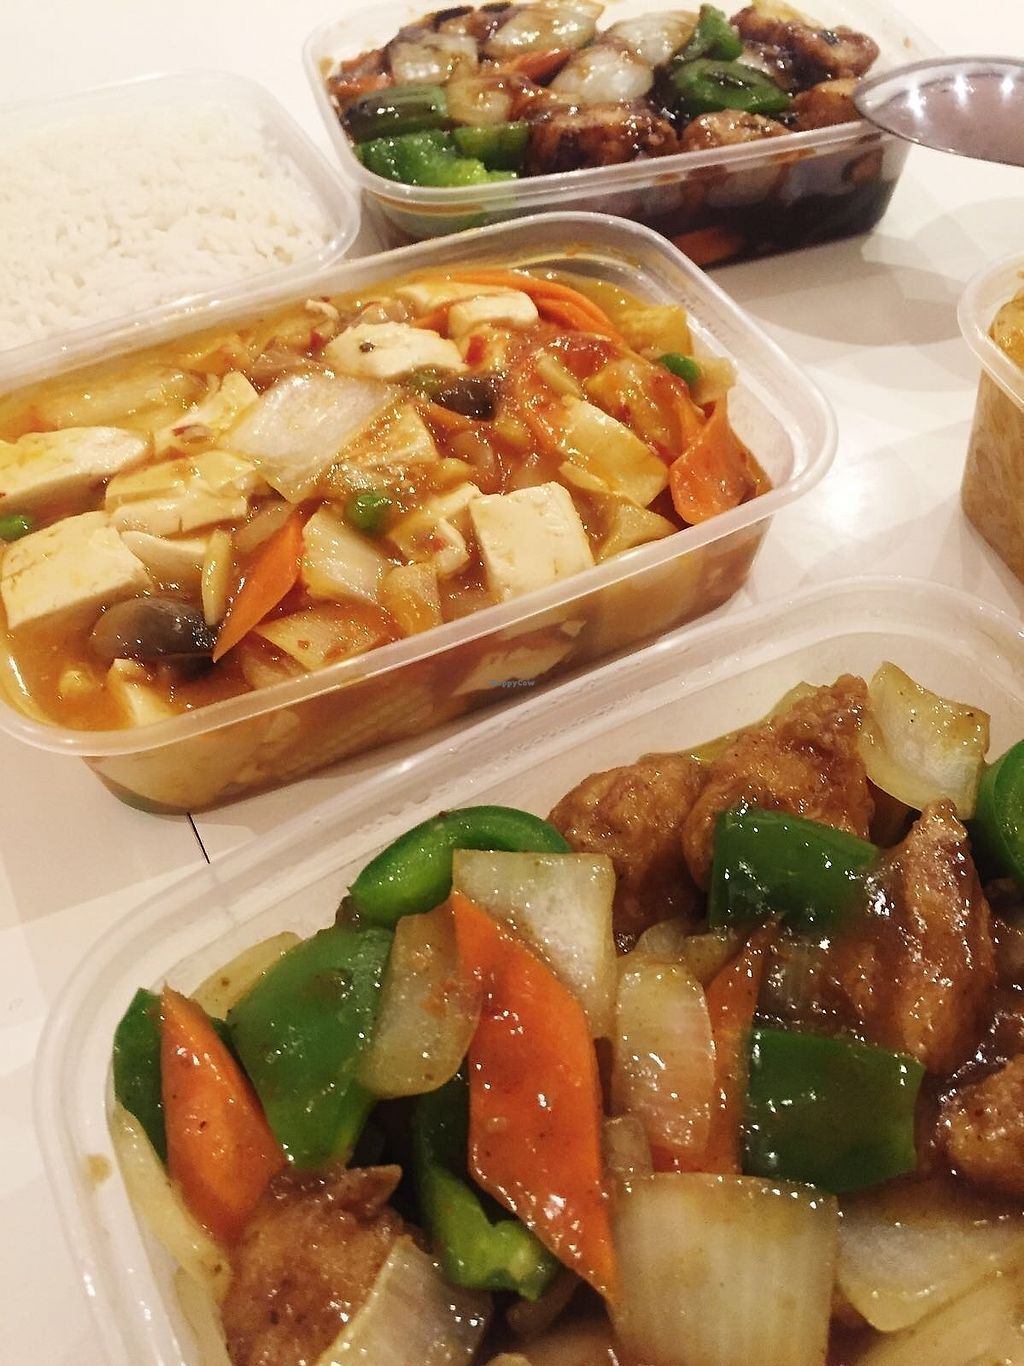 """Photo of New Happy Palace   by <a href=""""/members/profile/TARAMCDONALD"""">TARAMCDONALD</a> <br/>Takeaway goodies, vegan mock meat chicken in black bean sauce and satay mock chicken! Boiled rice and veggie vegan noodles...delicious! <br/> December 12, 2017  - <a href='/contact/abuse/image/99866/334871'>Report</a>"""